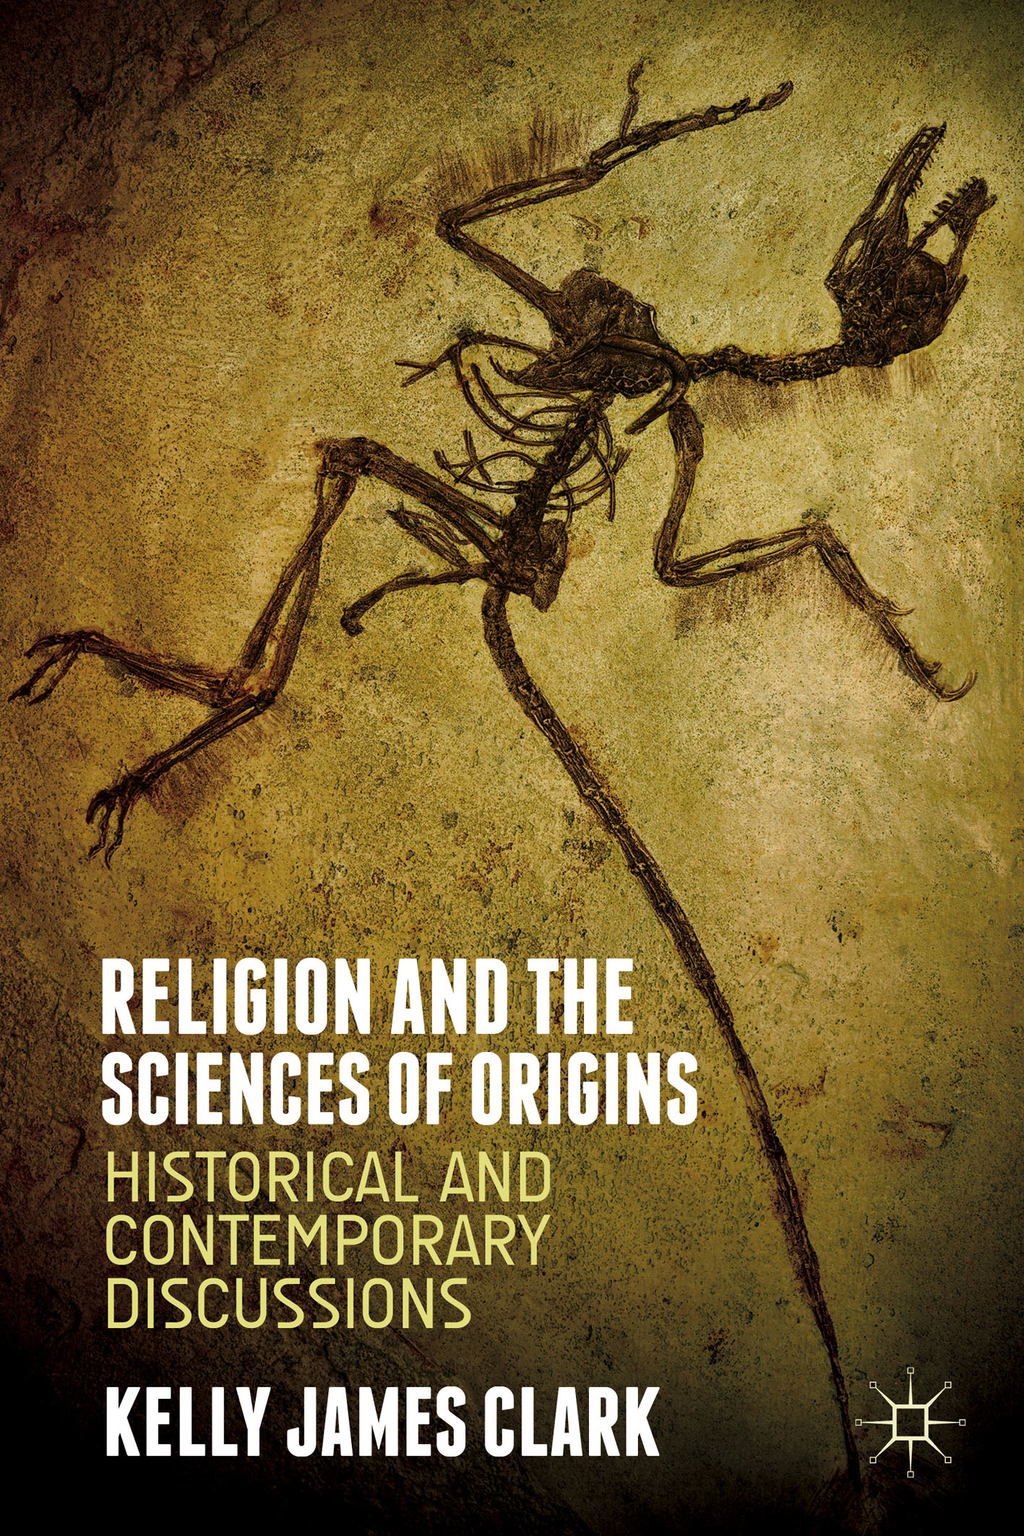 Religion and the Sciences of Origins Historical and Contemporary Discussions